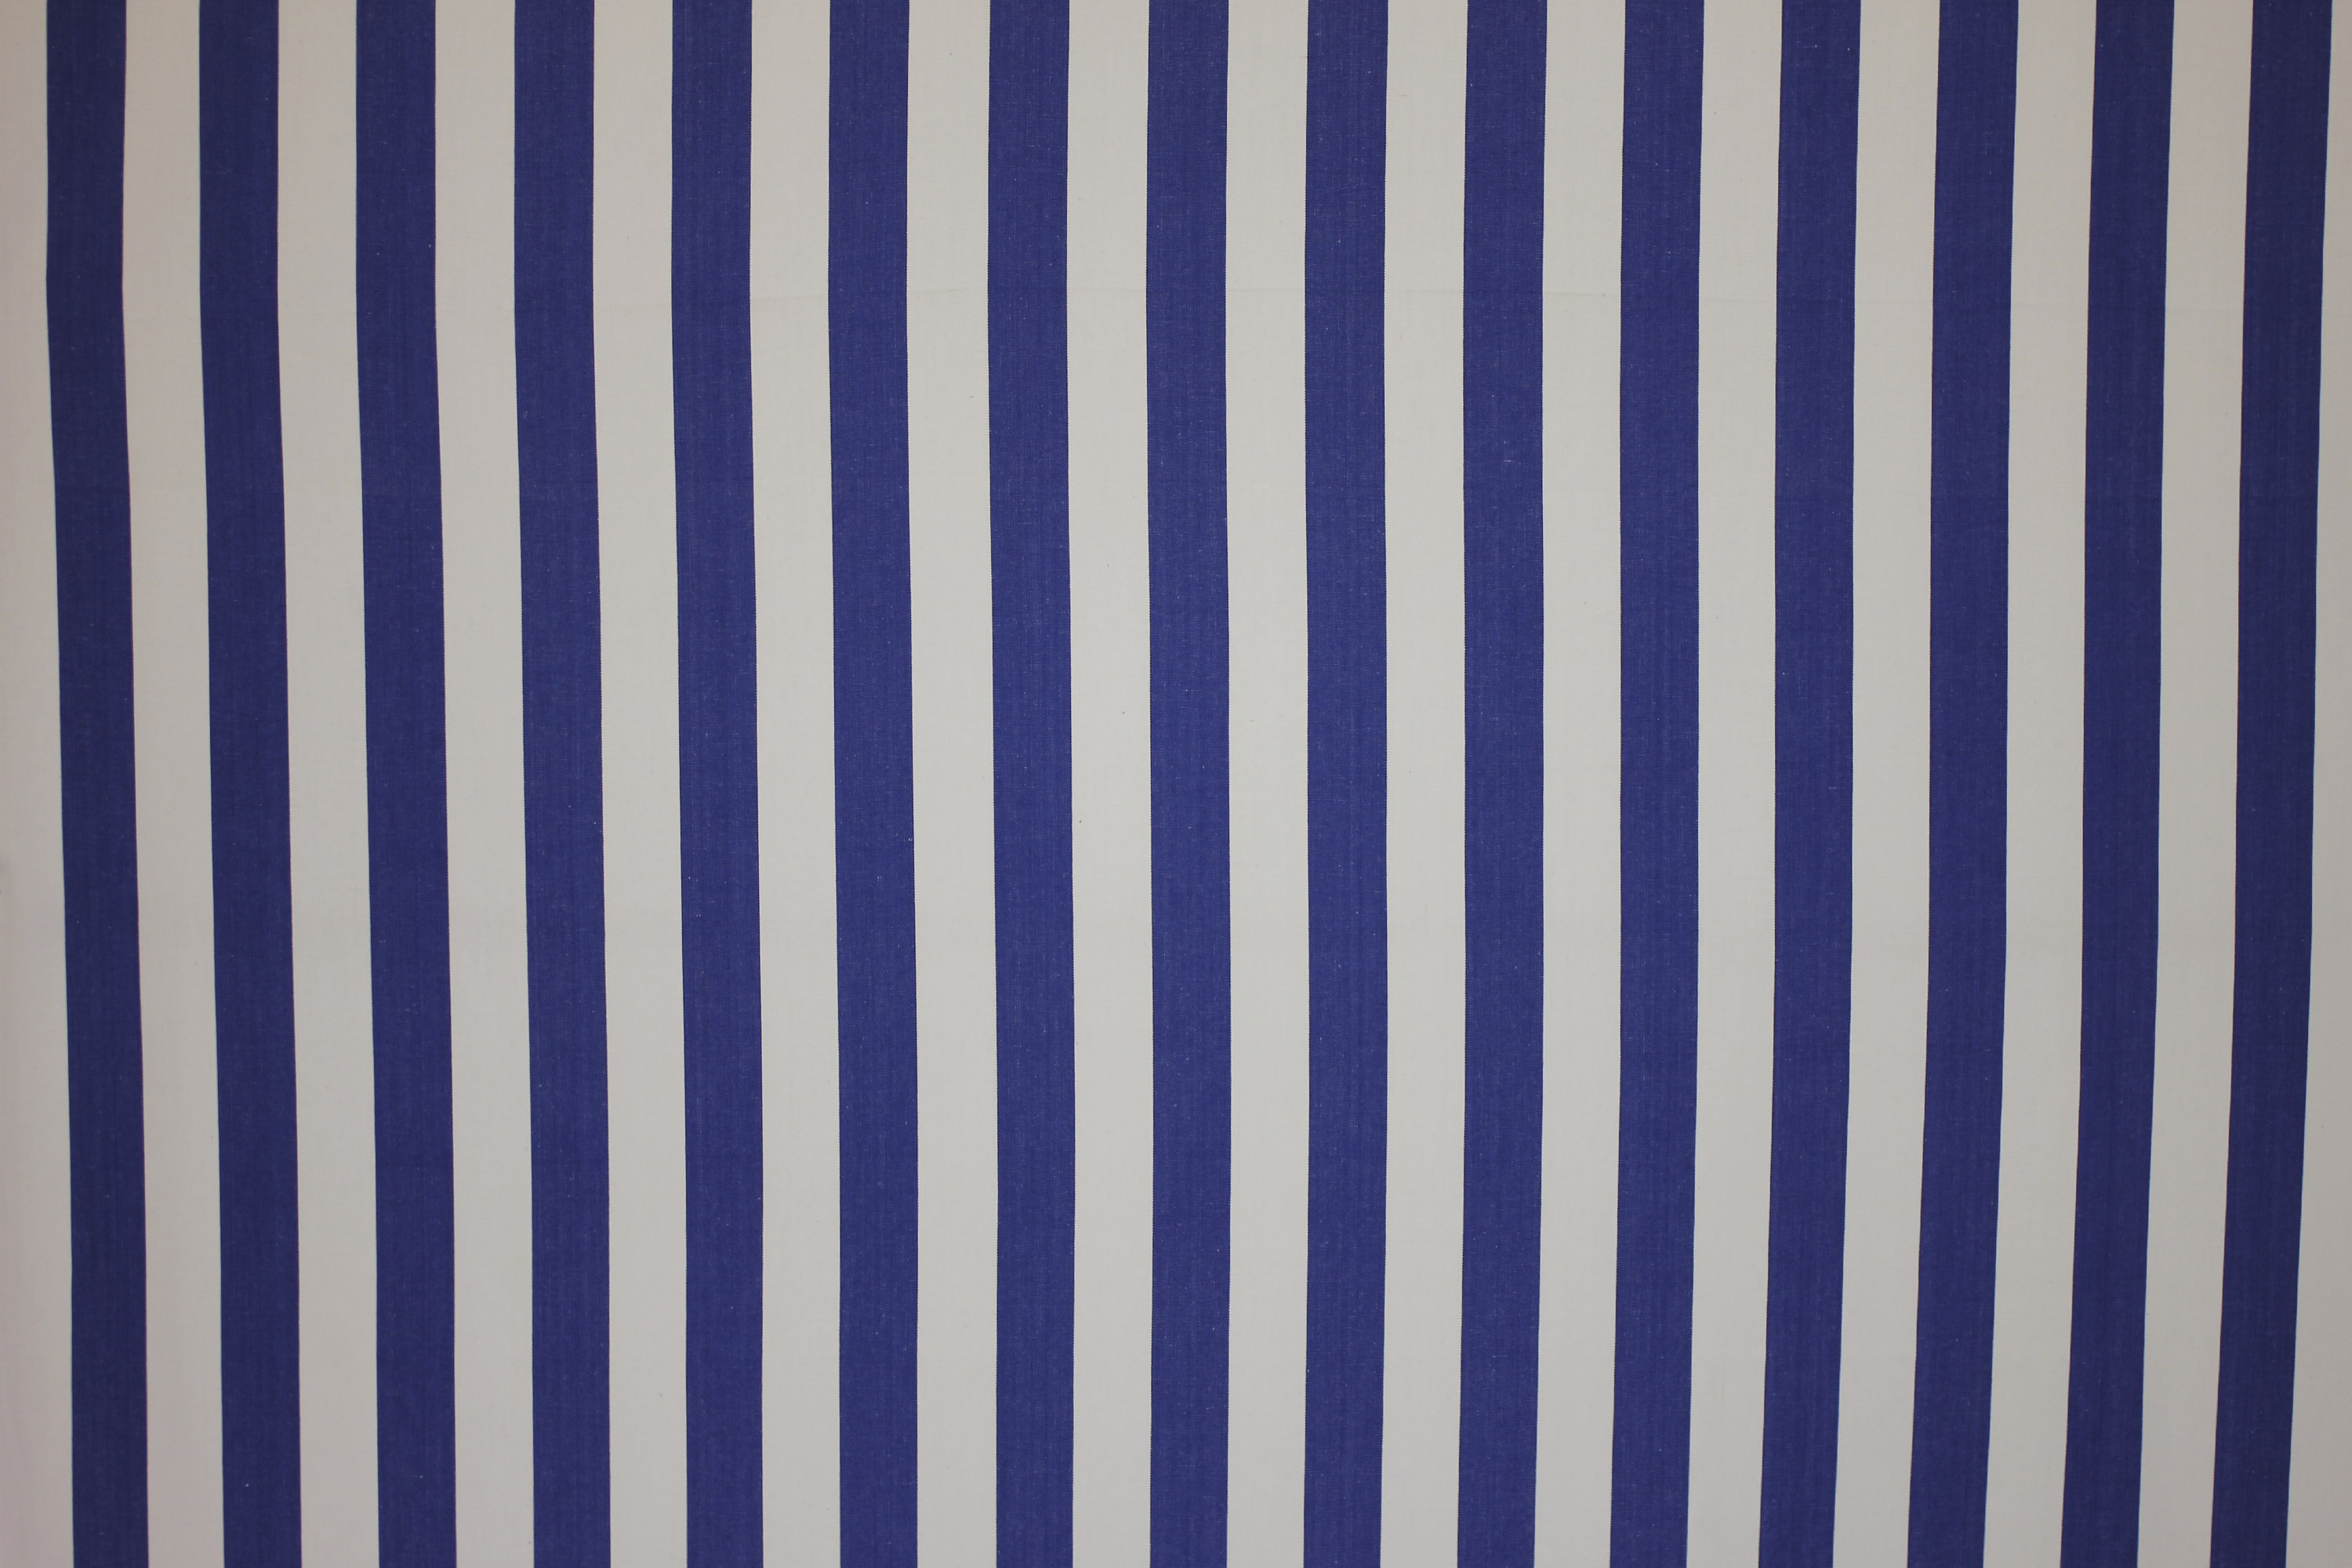 Blue and White Striped Upholstery Fabric | Blue and White Stripe Curtain Fabric | Soccer Stripe